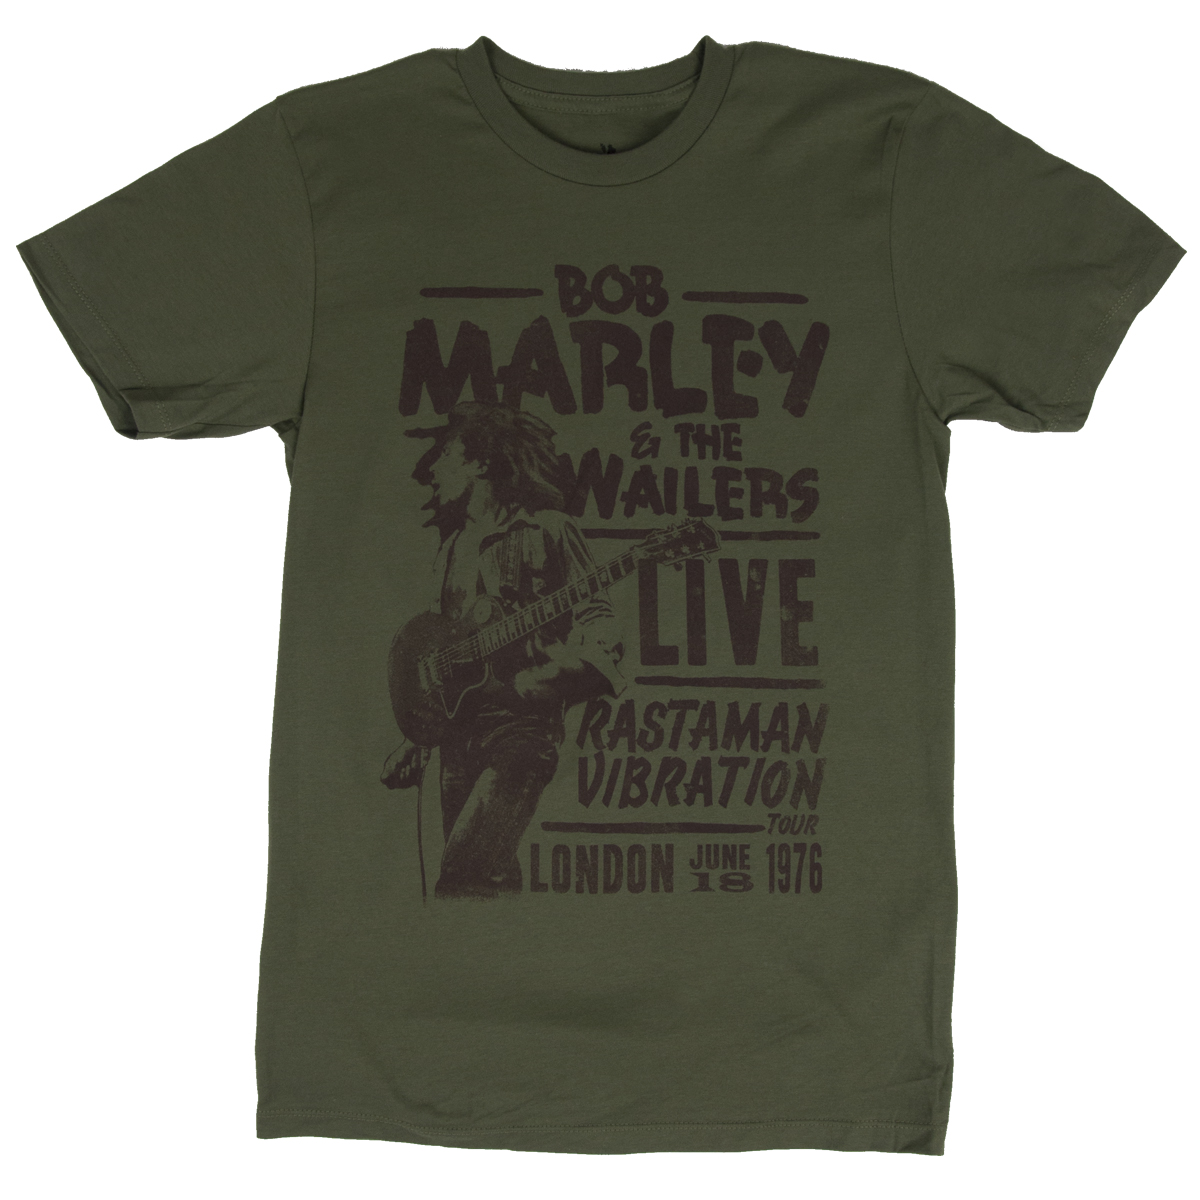 Bob Marley Rastaman Live in London Olive T-Shirt - Men's